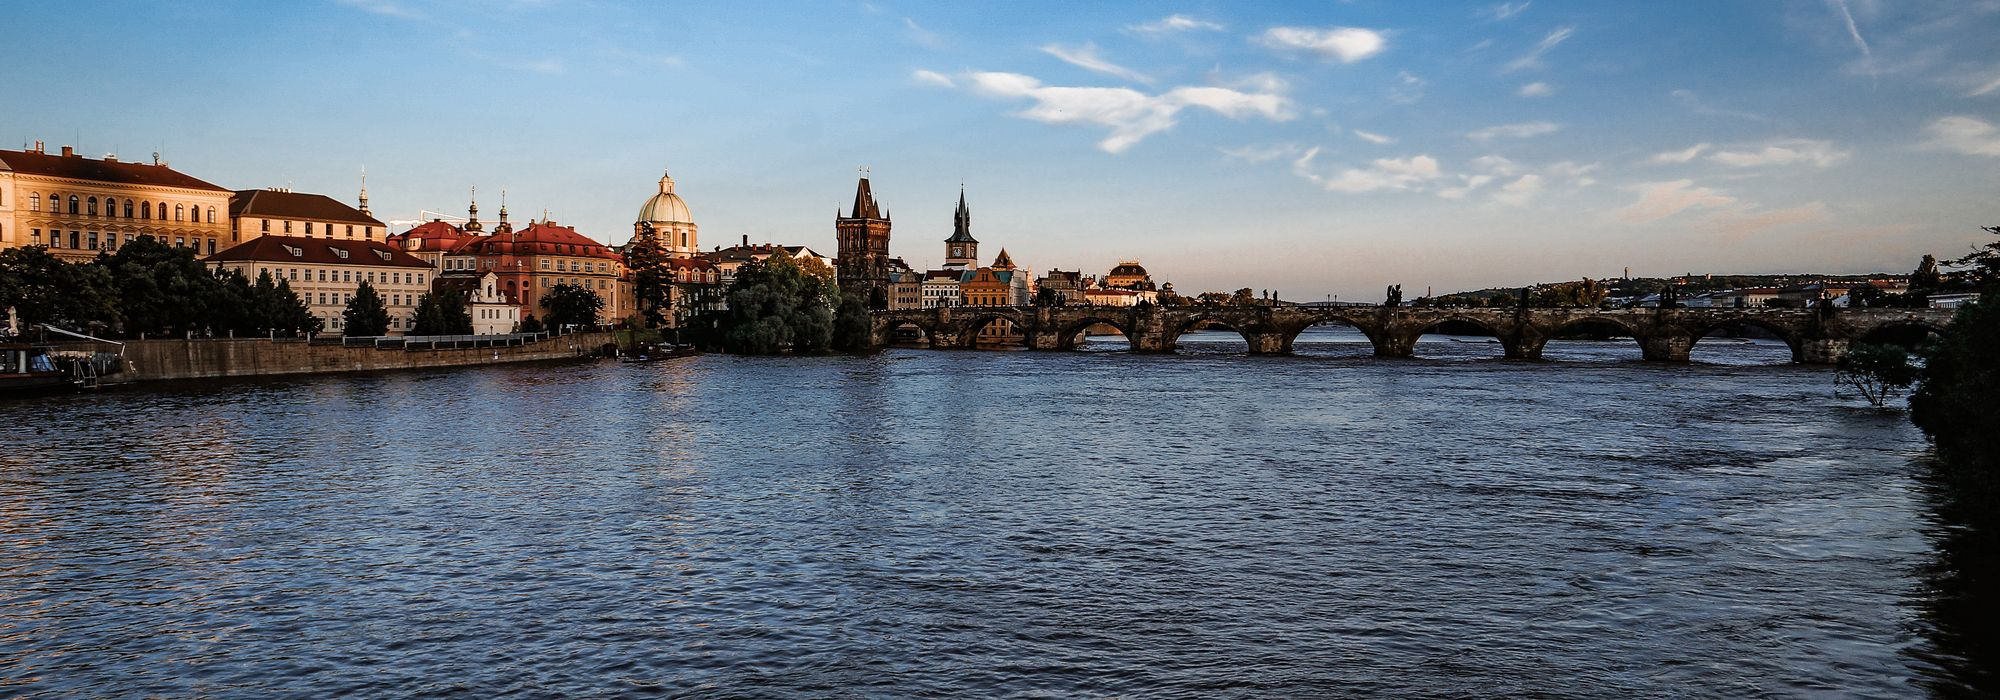 Prague - old town and bridge .jpg